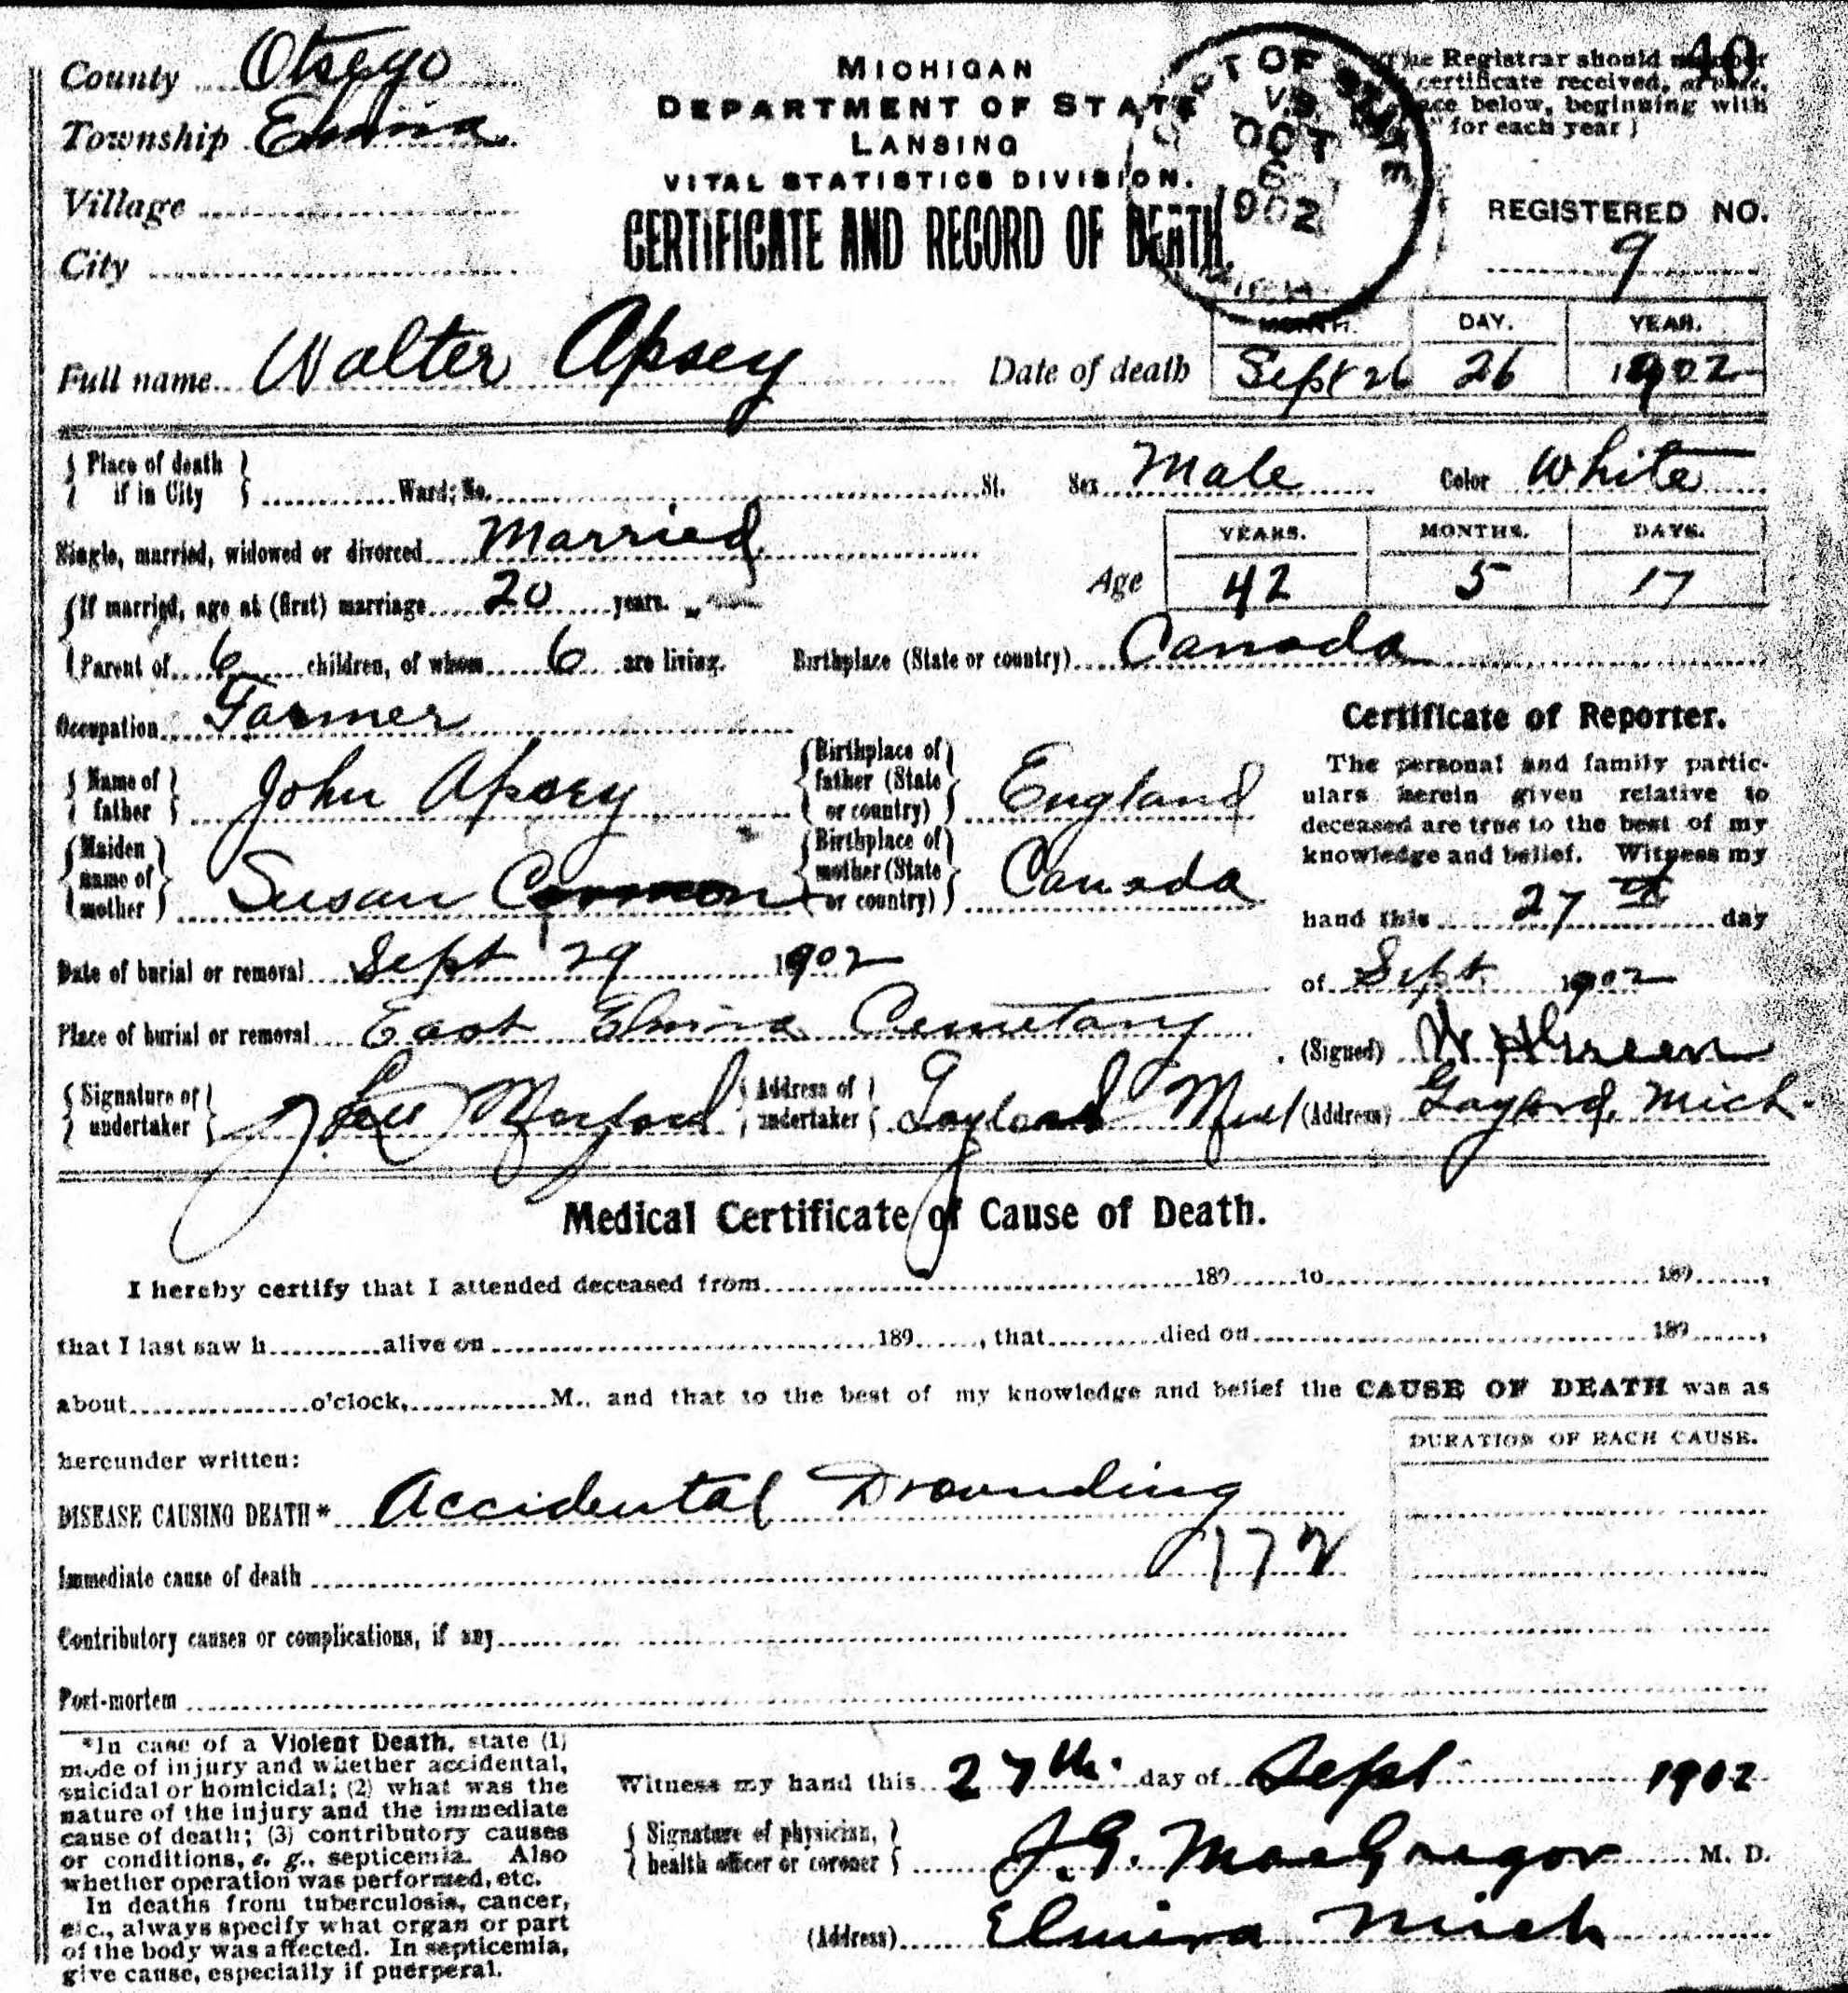 Walter Apsey Death Certificate